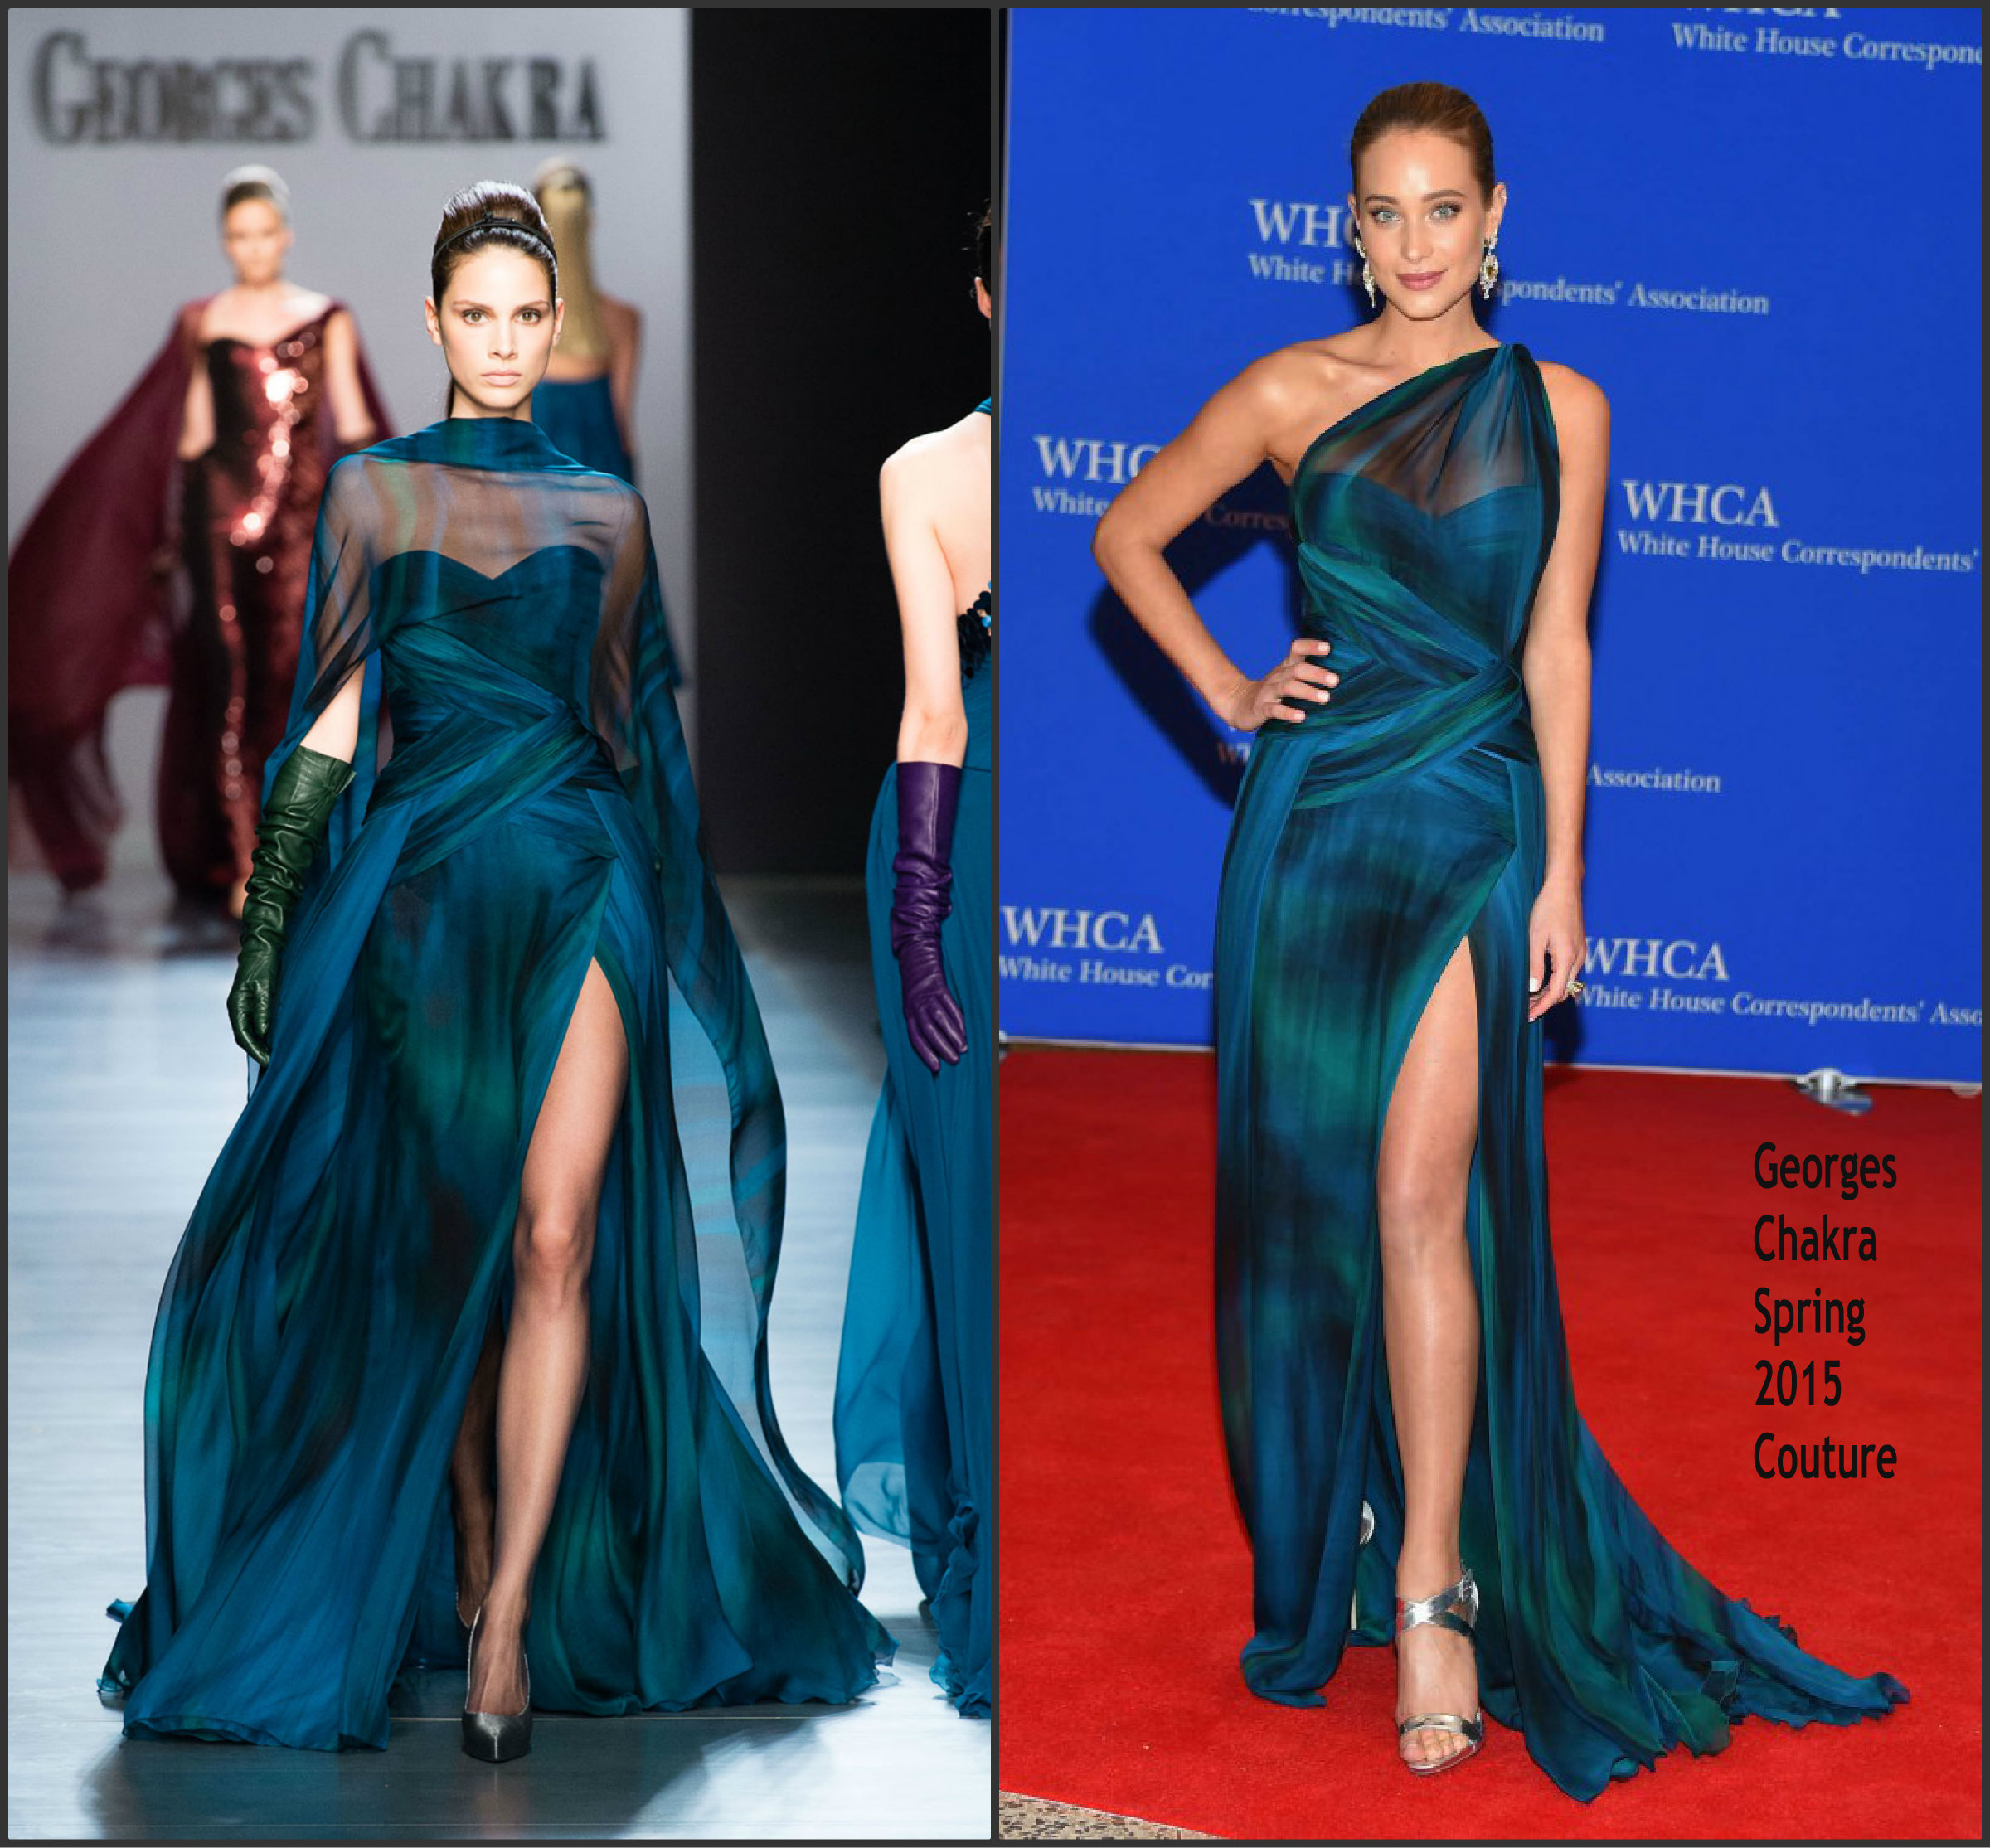 Hannah-Davis-in-Georges-Chakra-at-the-2015-White-House-Correspondents-Association-Dinner